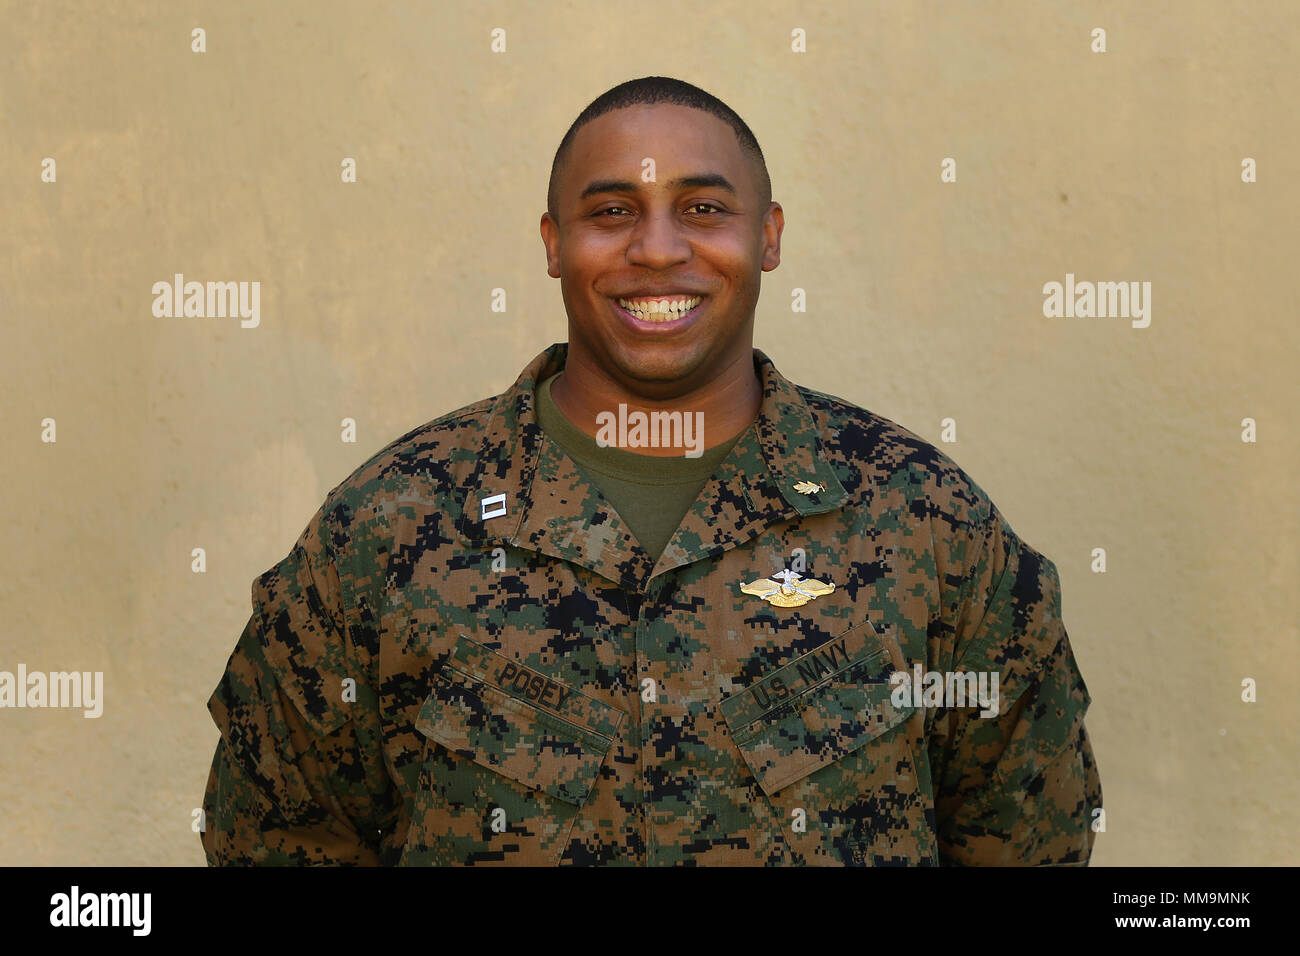 U.S. Navy LT Raymond Posey, an Atlanta, Georgia native, is the operations officer of the Sri Lanka Health Engagement 17 team, held from Sept. 9-23, 2017 at Naval Base Welisara, Sri Lanka. Posey enlisted into the U.S. Navy in 1998. As an enlisted Sailor, he obtained his bachelor's degree from Hawaii Pacific University and his master's degree from Cleveland State University and was commissioned in 2009. He is currently the Health Service Support Officer for 3d Marine Logistics Group, III Marine Expeditionary Force in Okinawa, Japan. (U.S. Marine Corps photo by Sgt. Kathy Nunez) - Stock Image